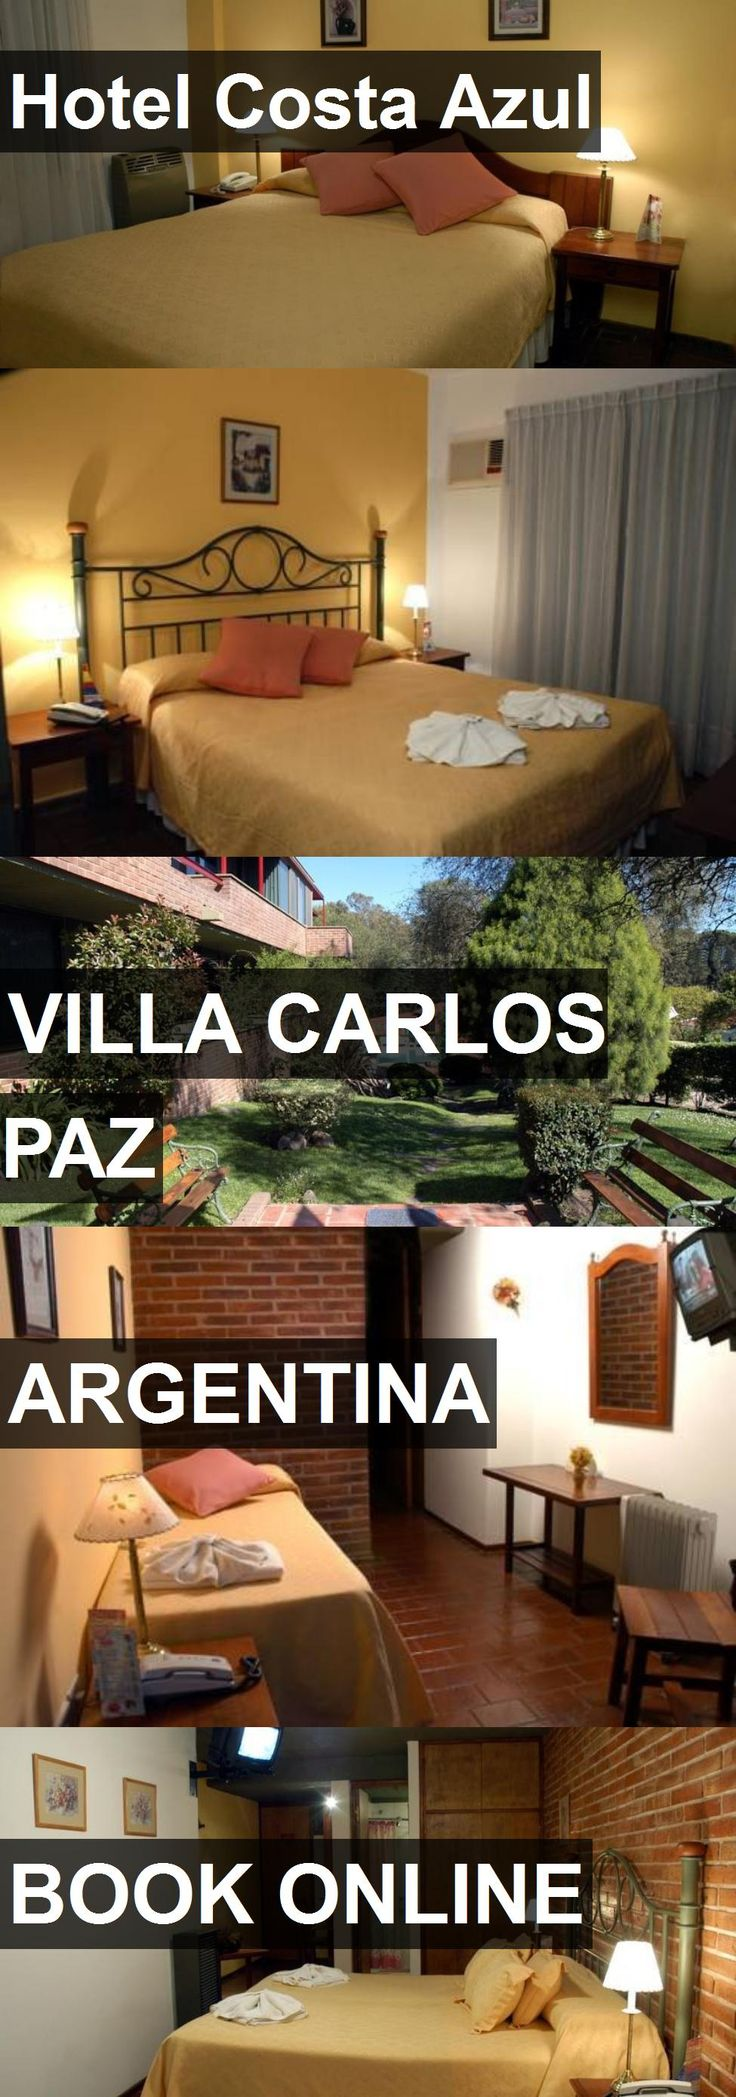 Hotel Costa Azul in Villa Carlos Paz, Argentina. For more information, photos, reviews and best prices please follow the link. #Argentina #VillaCarlosPaz #travel #vacation #hotel